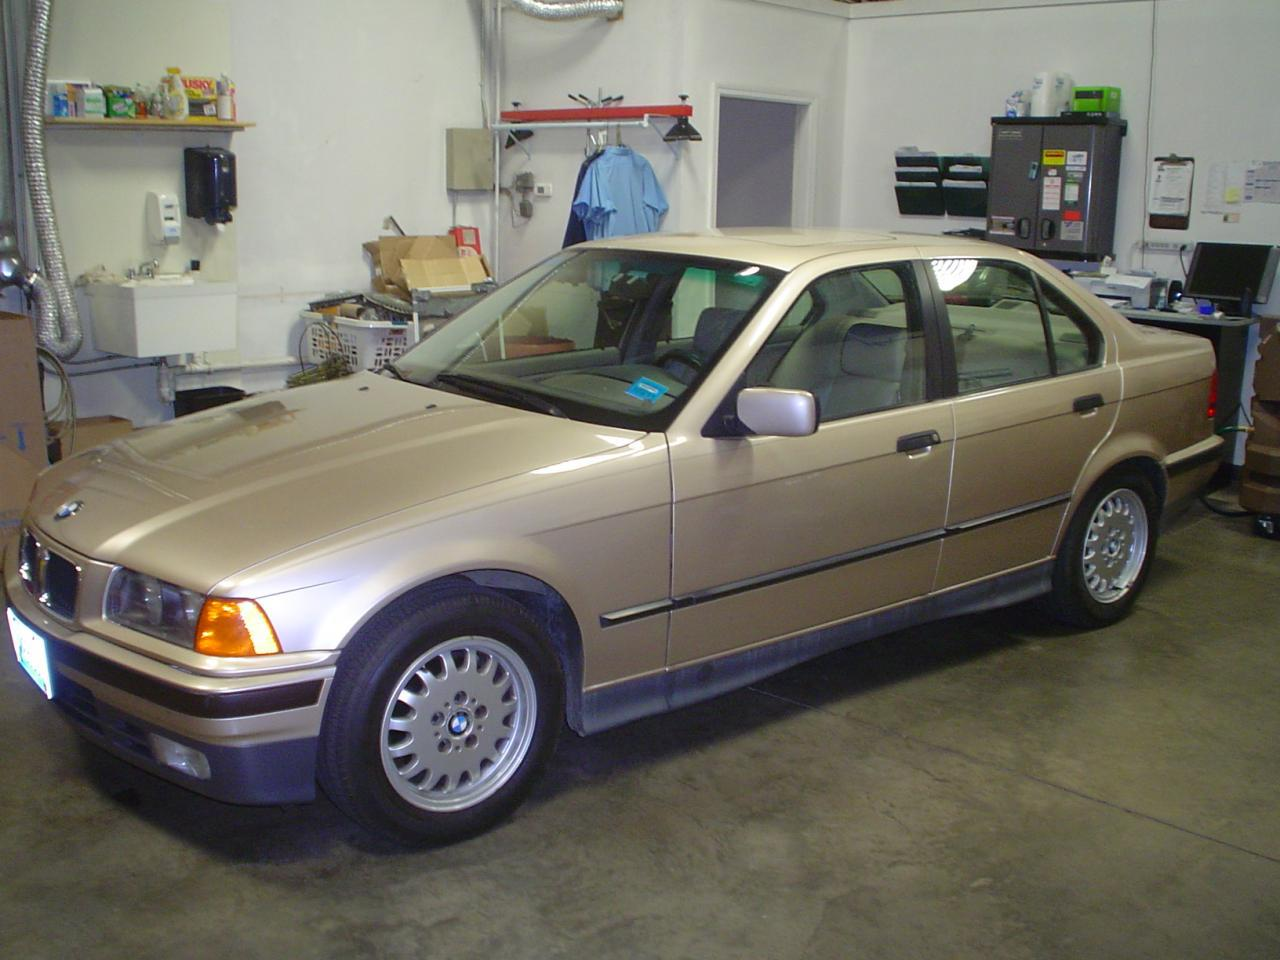 This is low mileage and very clean 6 series.I had this in for service and the customer had just bought it from a BMW collector in NH.It is a Metallic Gold color.Not many of them around up here in this condition.